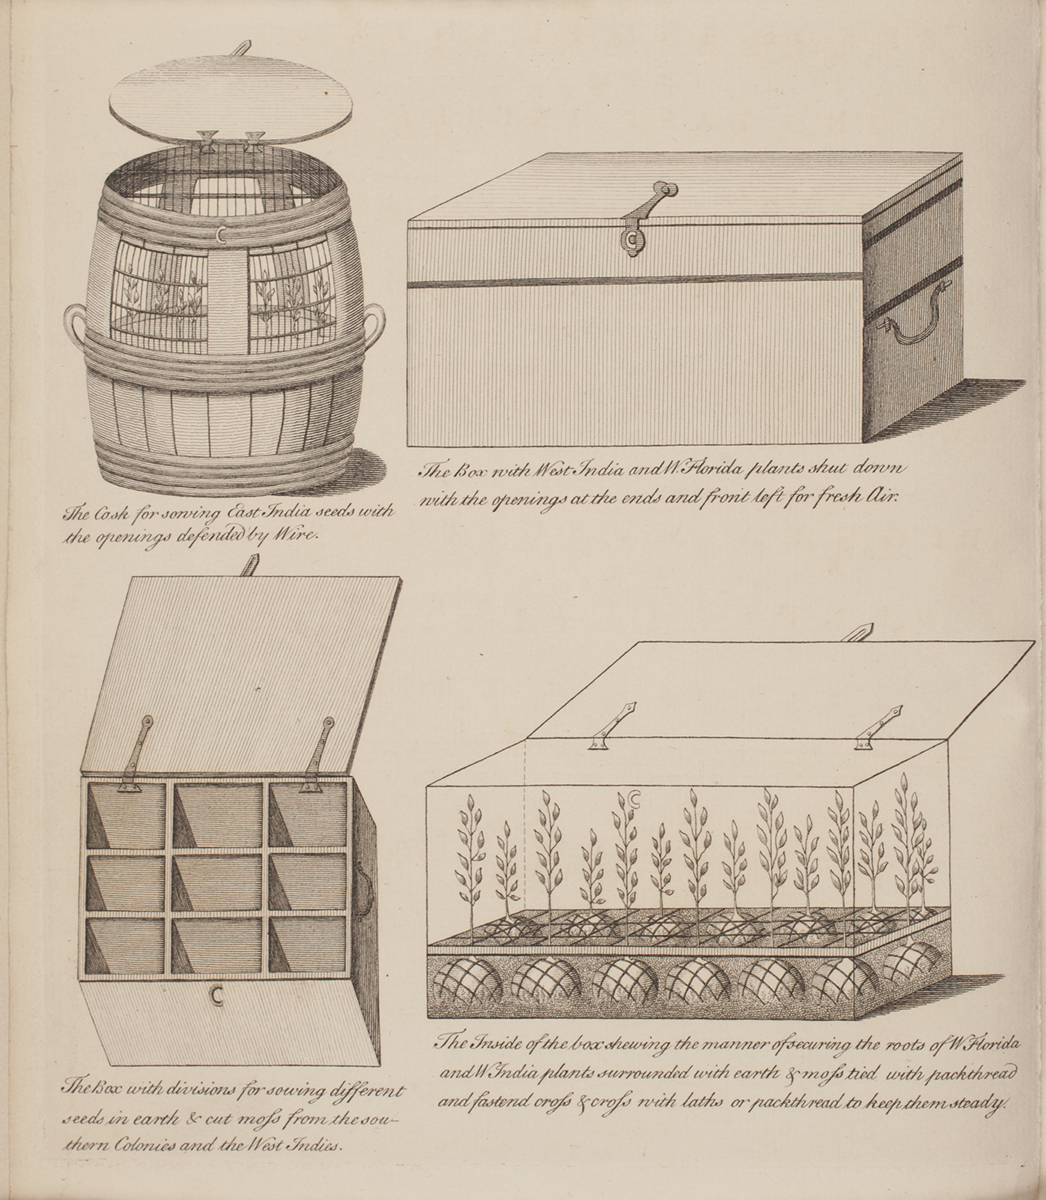 Directions for bringing over seeds and plants, from the East